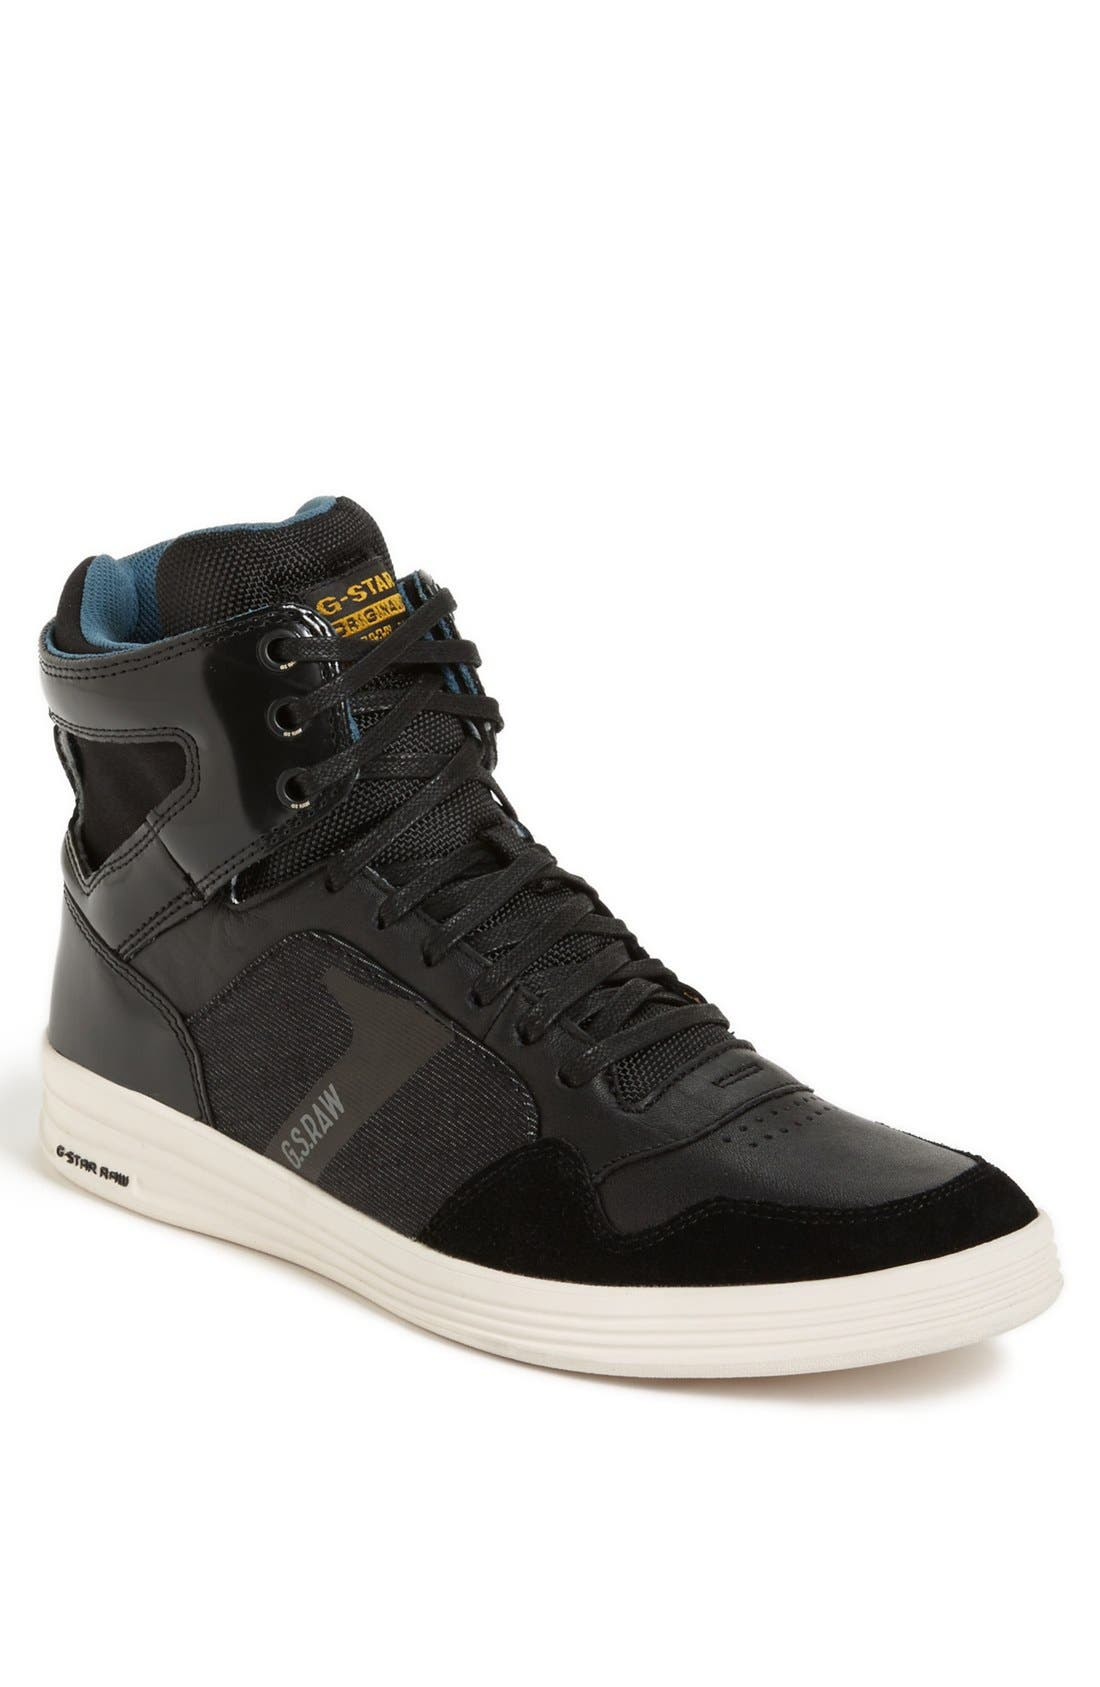 Main Image - G-Star Raw 'Futura Outland' Sneaker